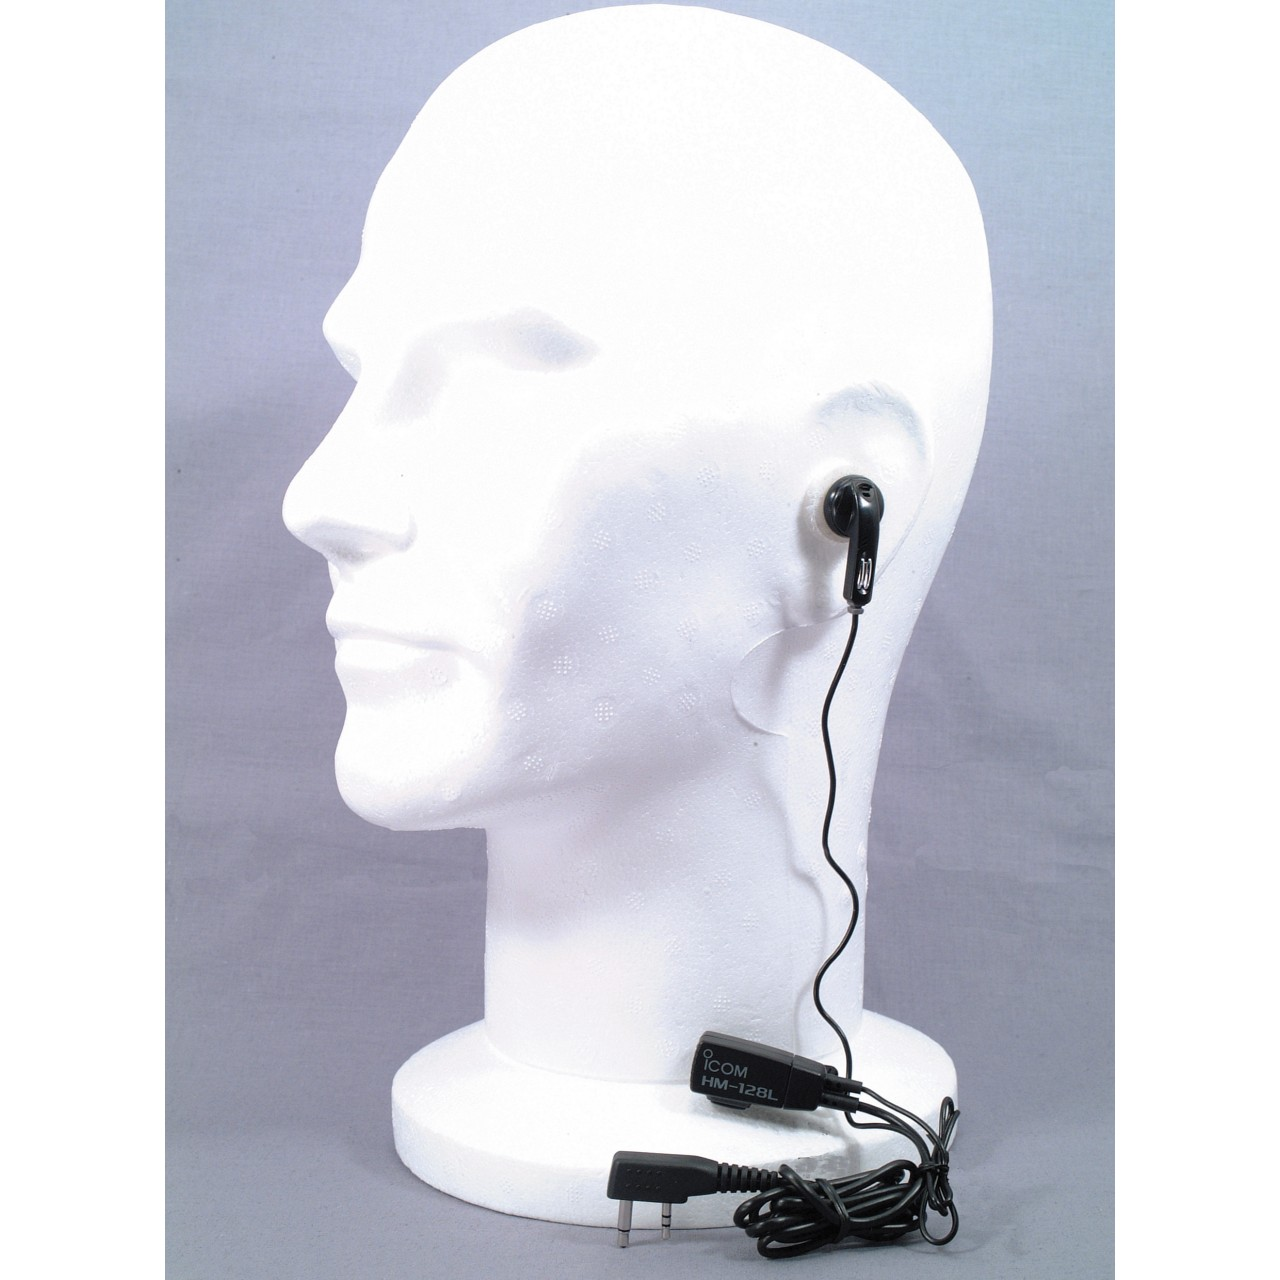 HM-128L Headsets and earphones - ICOM